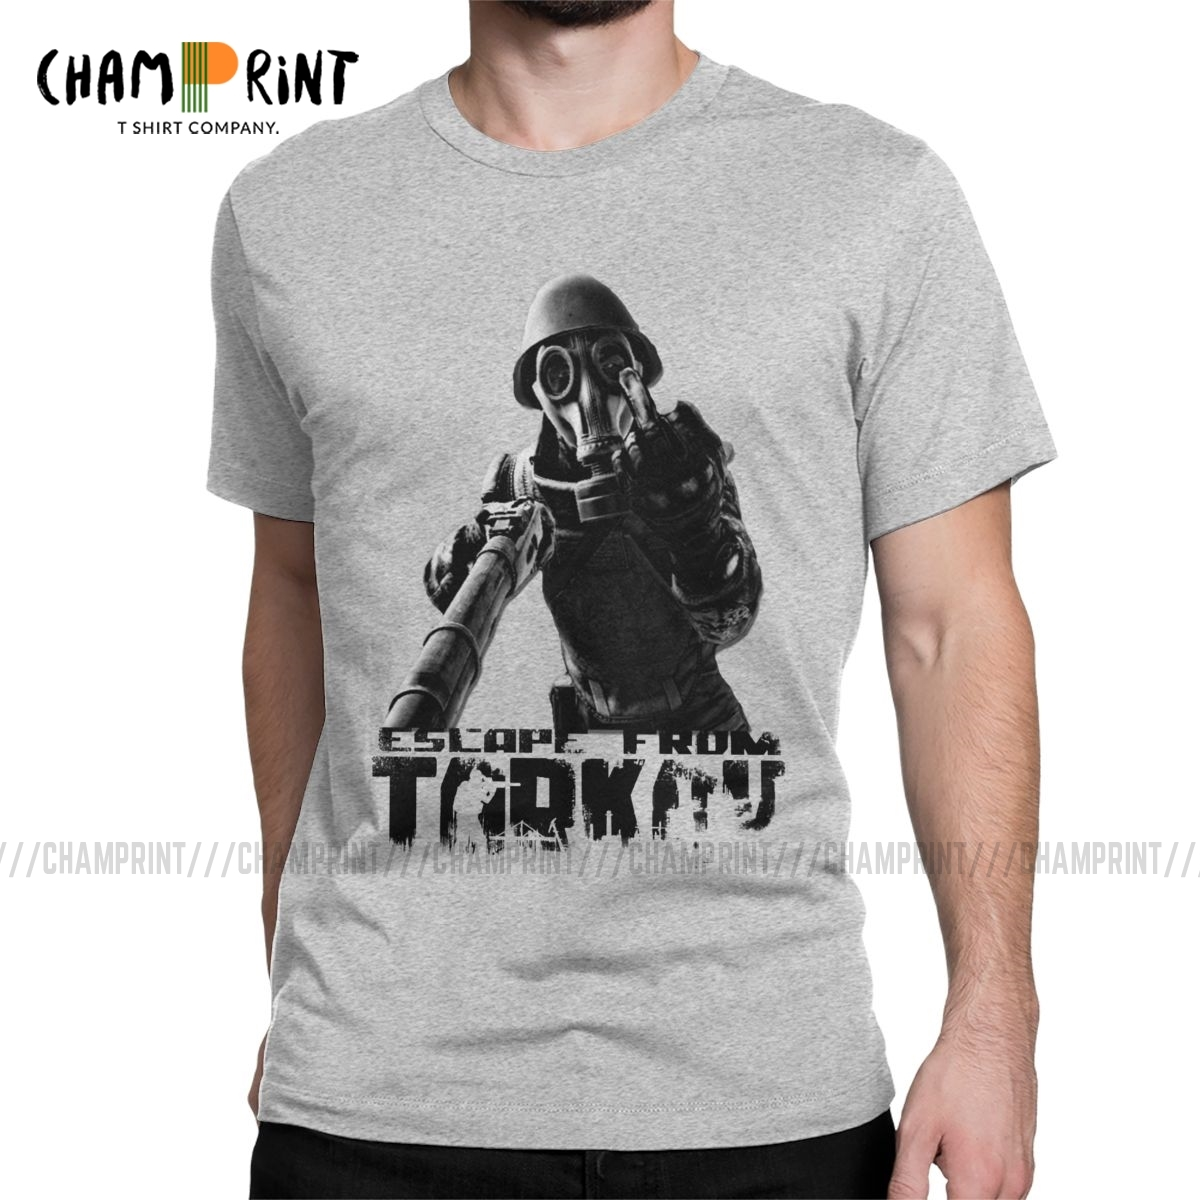 Escape From Tarkov This Is For You T Shirt Men's Novelty T-Shirts Survival Shooter Game Tee Shirt Short Sleeve Tops 4XL 5XL 6XL